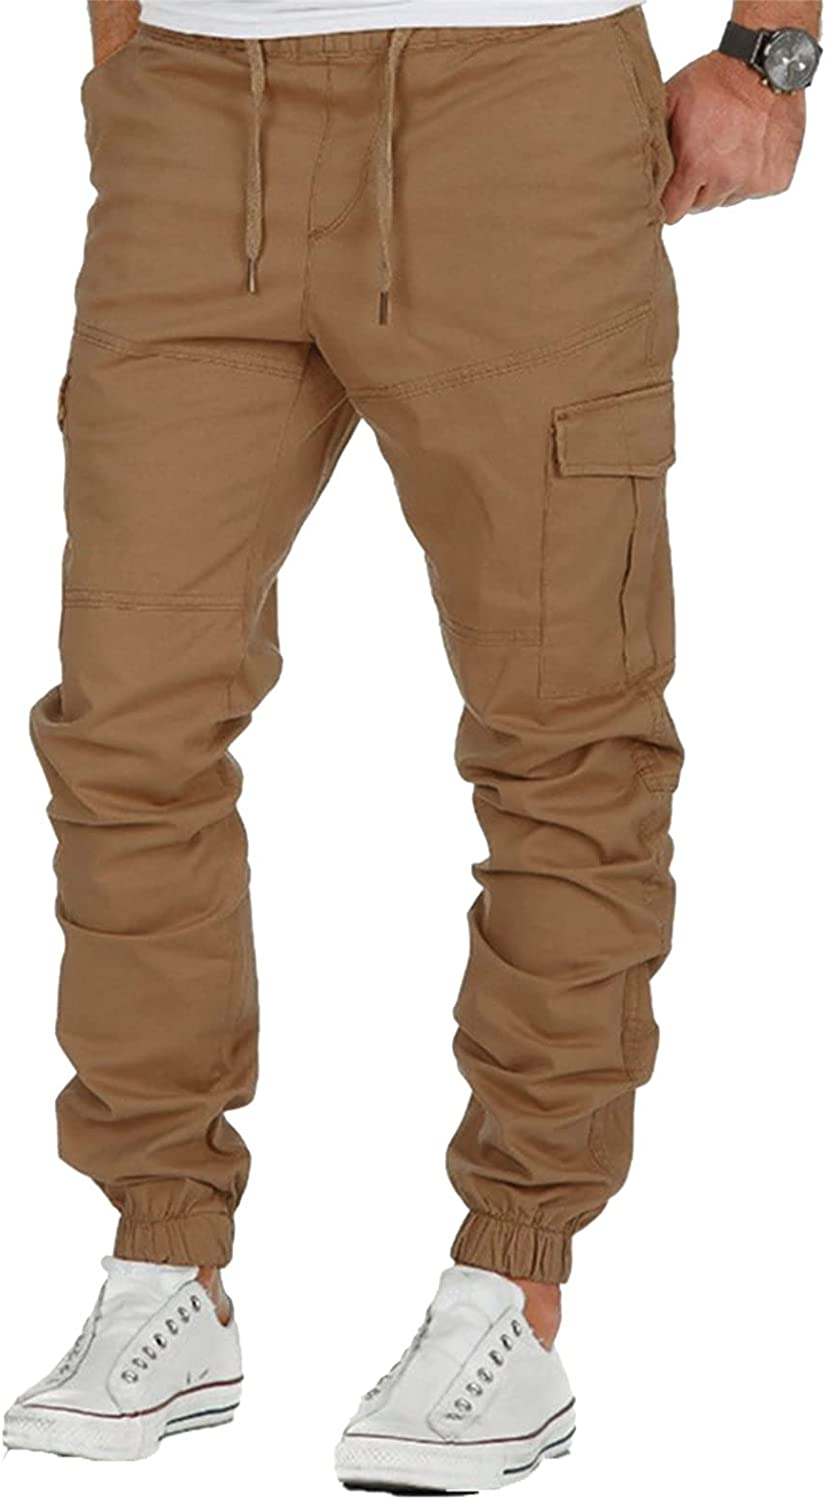 Free shipping / New Men's Sweat Pants Casual Solid Jogger Color Multi Pockets Sports unisex